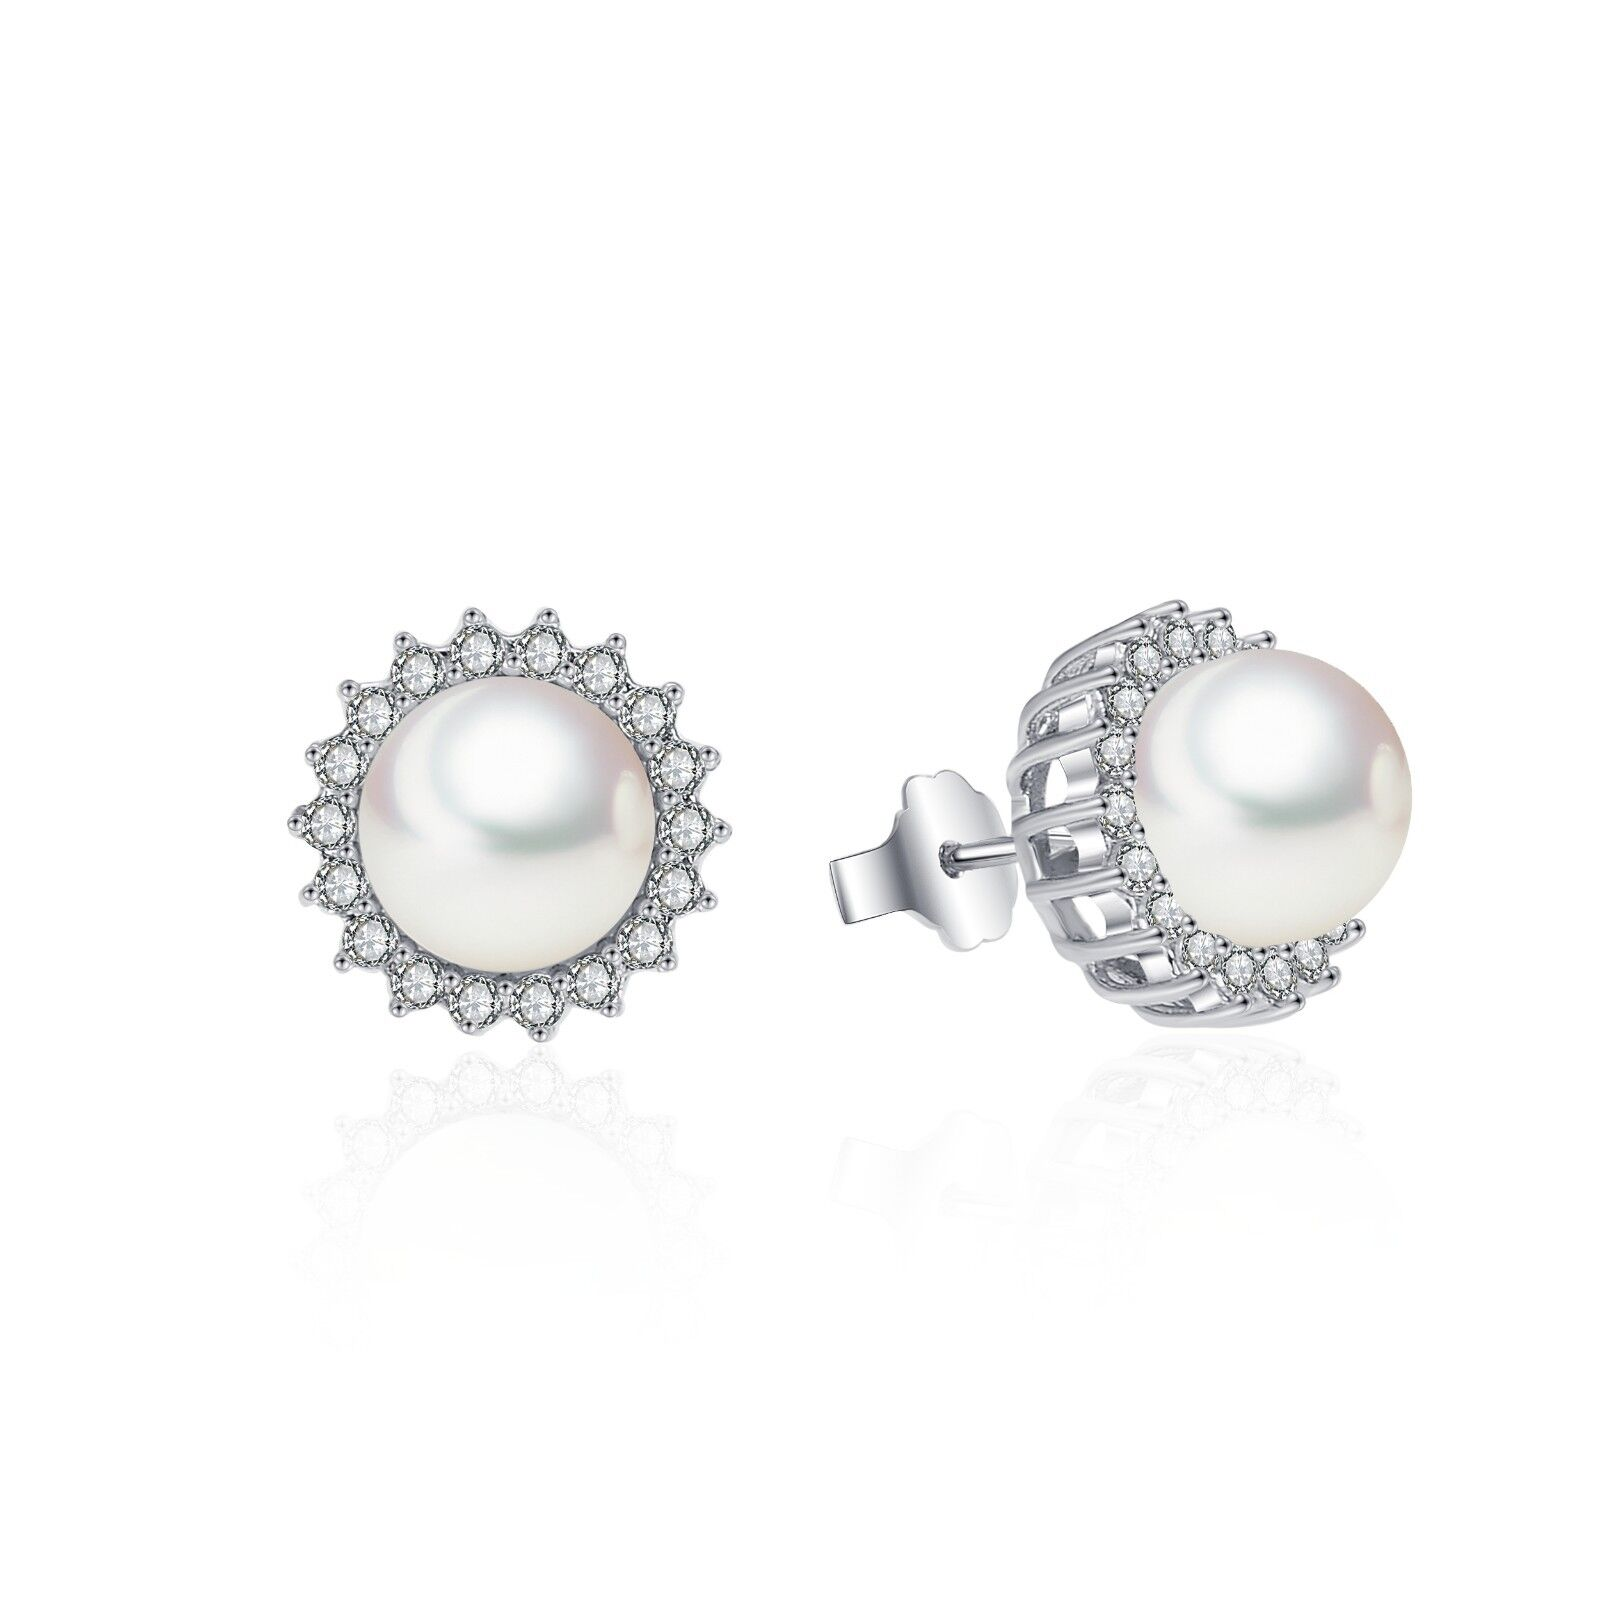 Details About Sunshine Pearl Cz Stud Earrings Aaa Cubic Zirconia 14k White Gold Clad Br